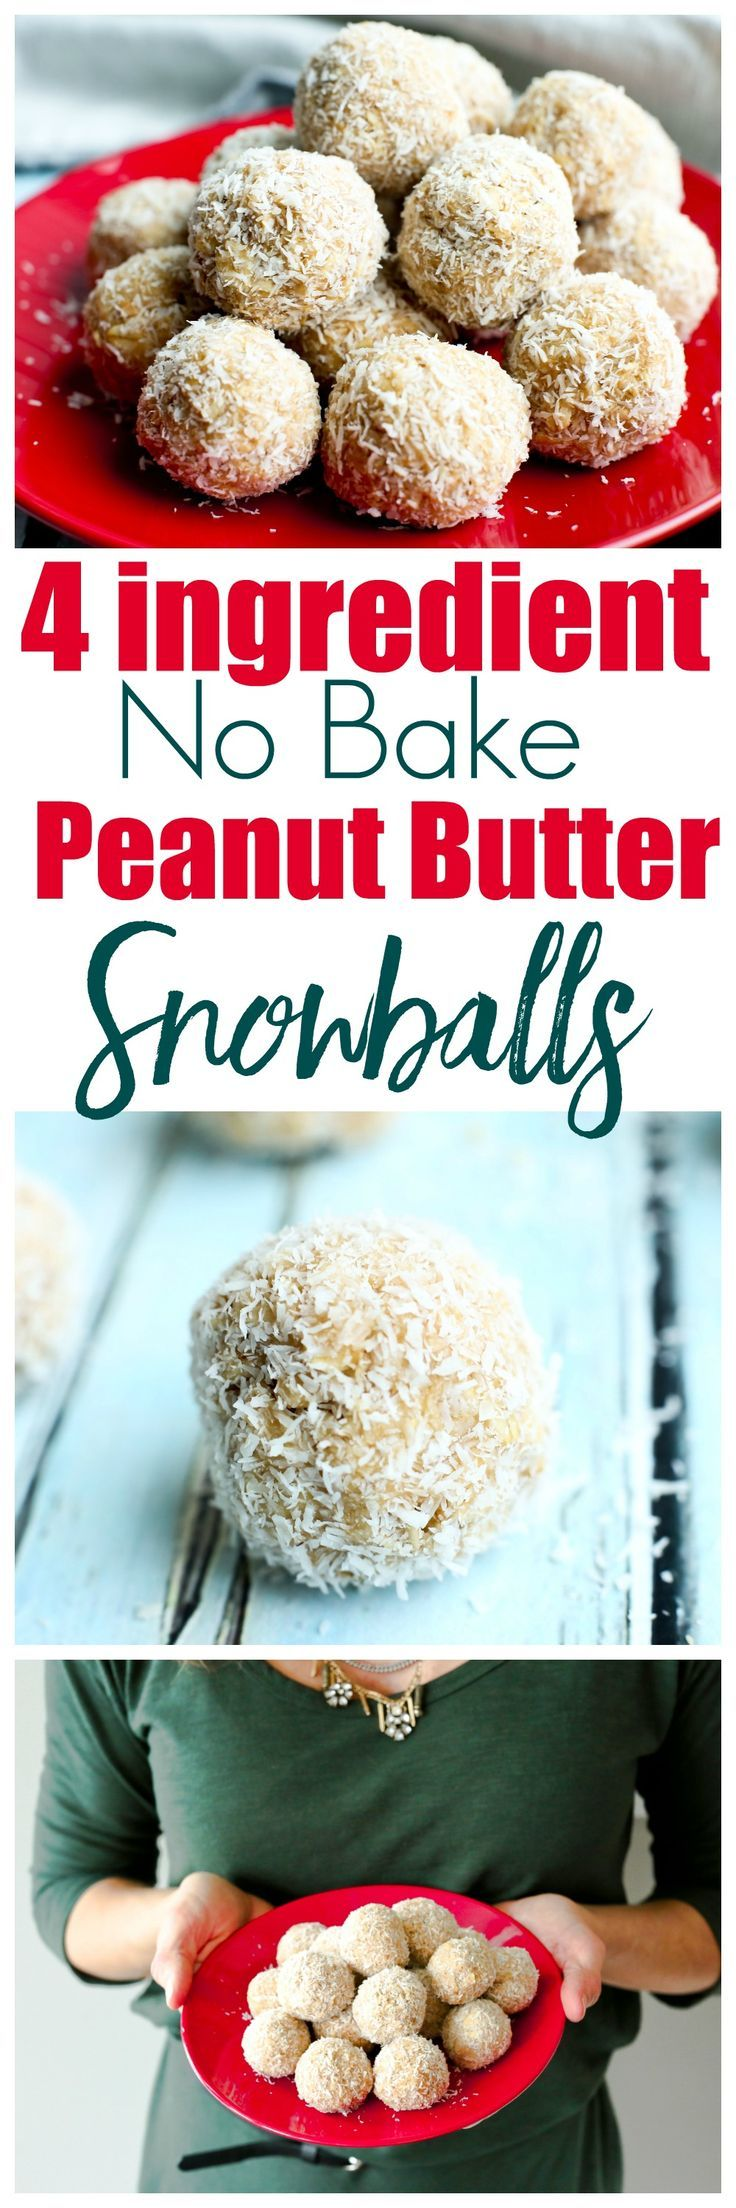 No-Bake Peanut Butter Snowballs Recipe. This is a healthy No-bake christmas cookie recipe. If you are looking for a healthy, gluten-free, no refined sugar holiday treat, this is it.  via @Maryea Flaherty